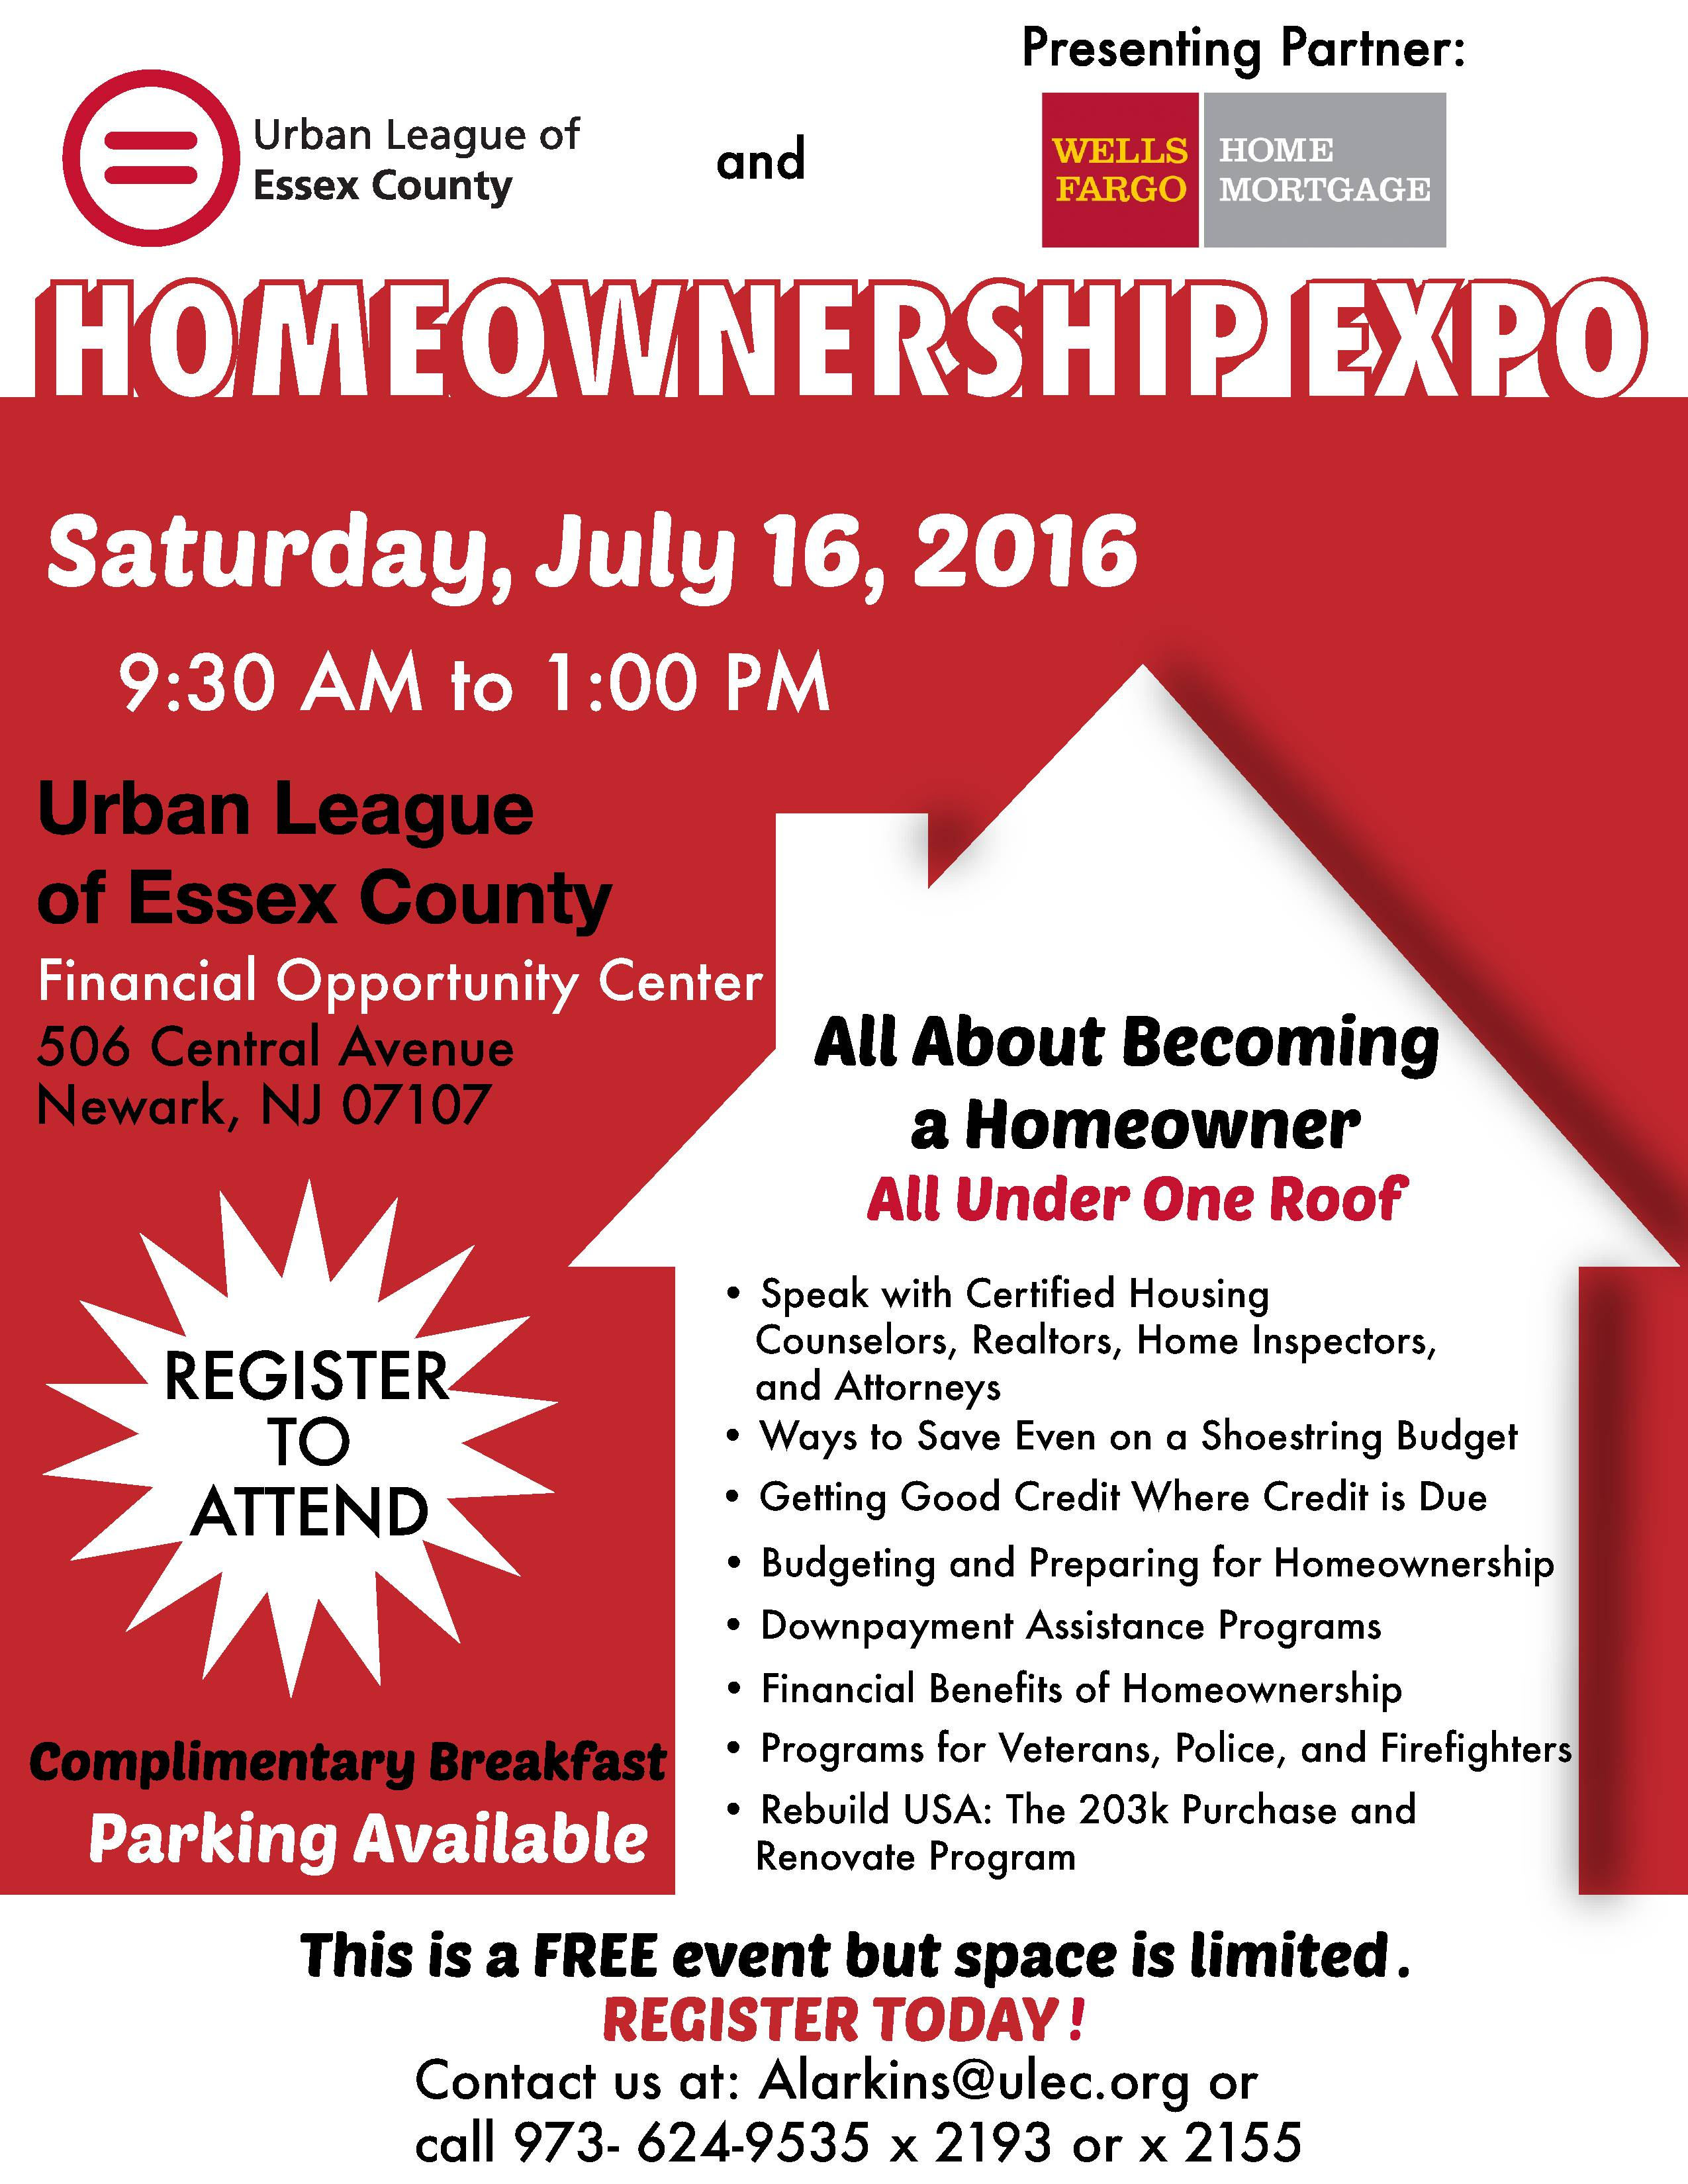 Housing_Expo_16JUL16.jpg